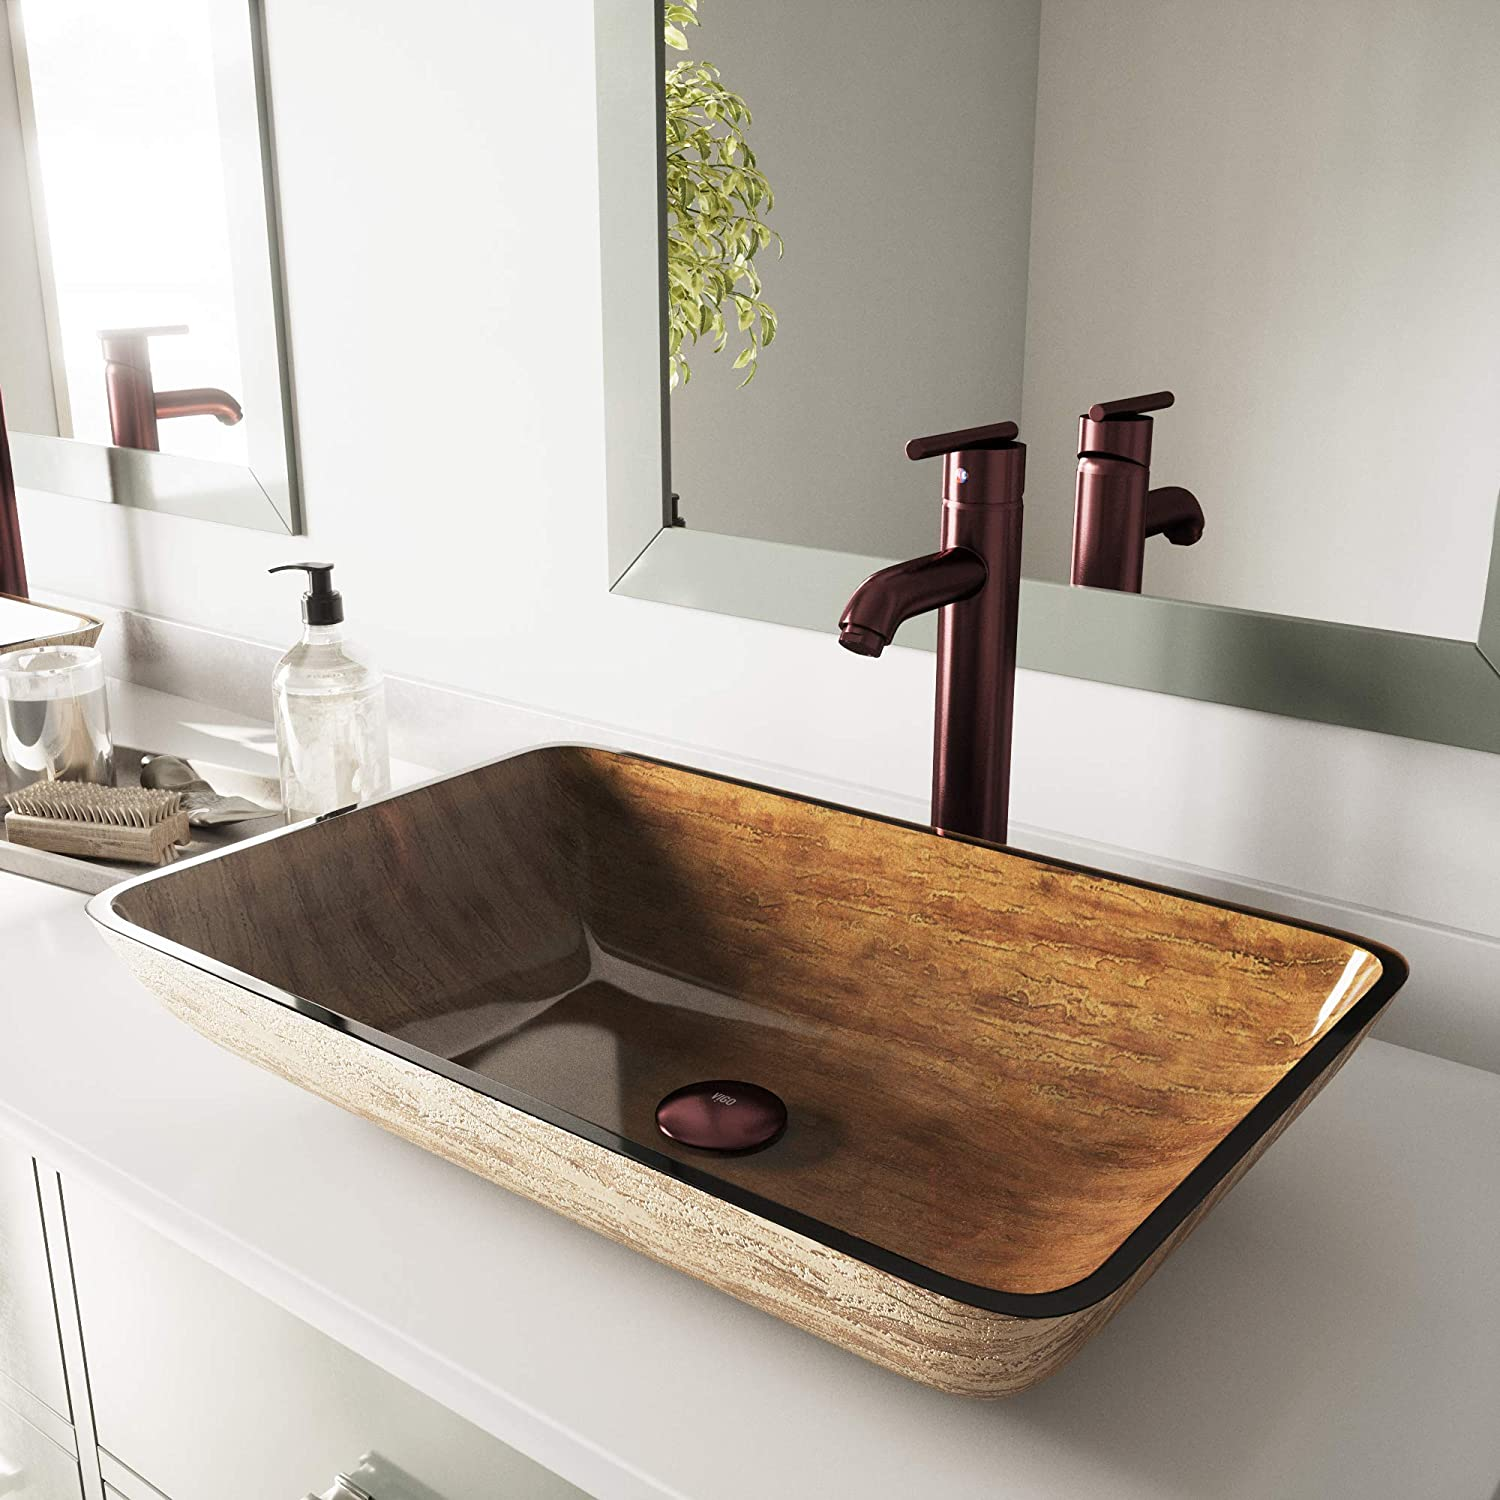 VIGO Rectangular Amber Sunset Glass Vessel Bathroom Sink and Seville Vessel Faucet with Pop Up, Oil Rubbed Bronze